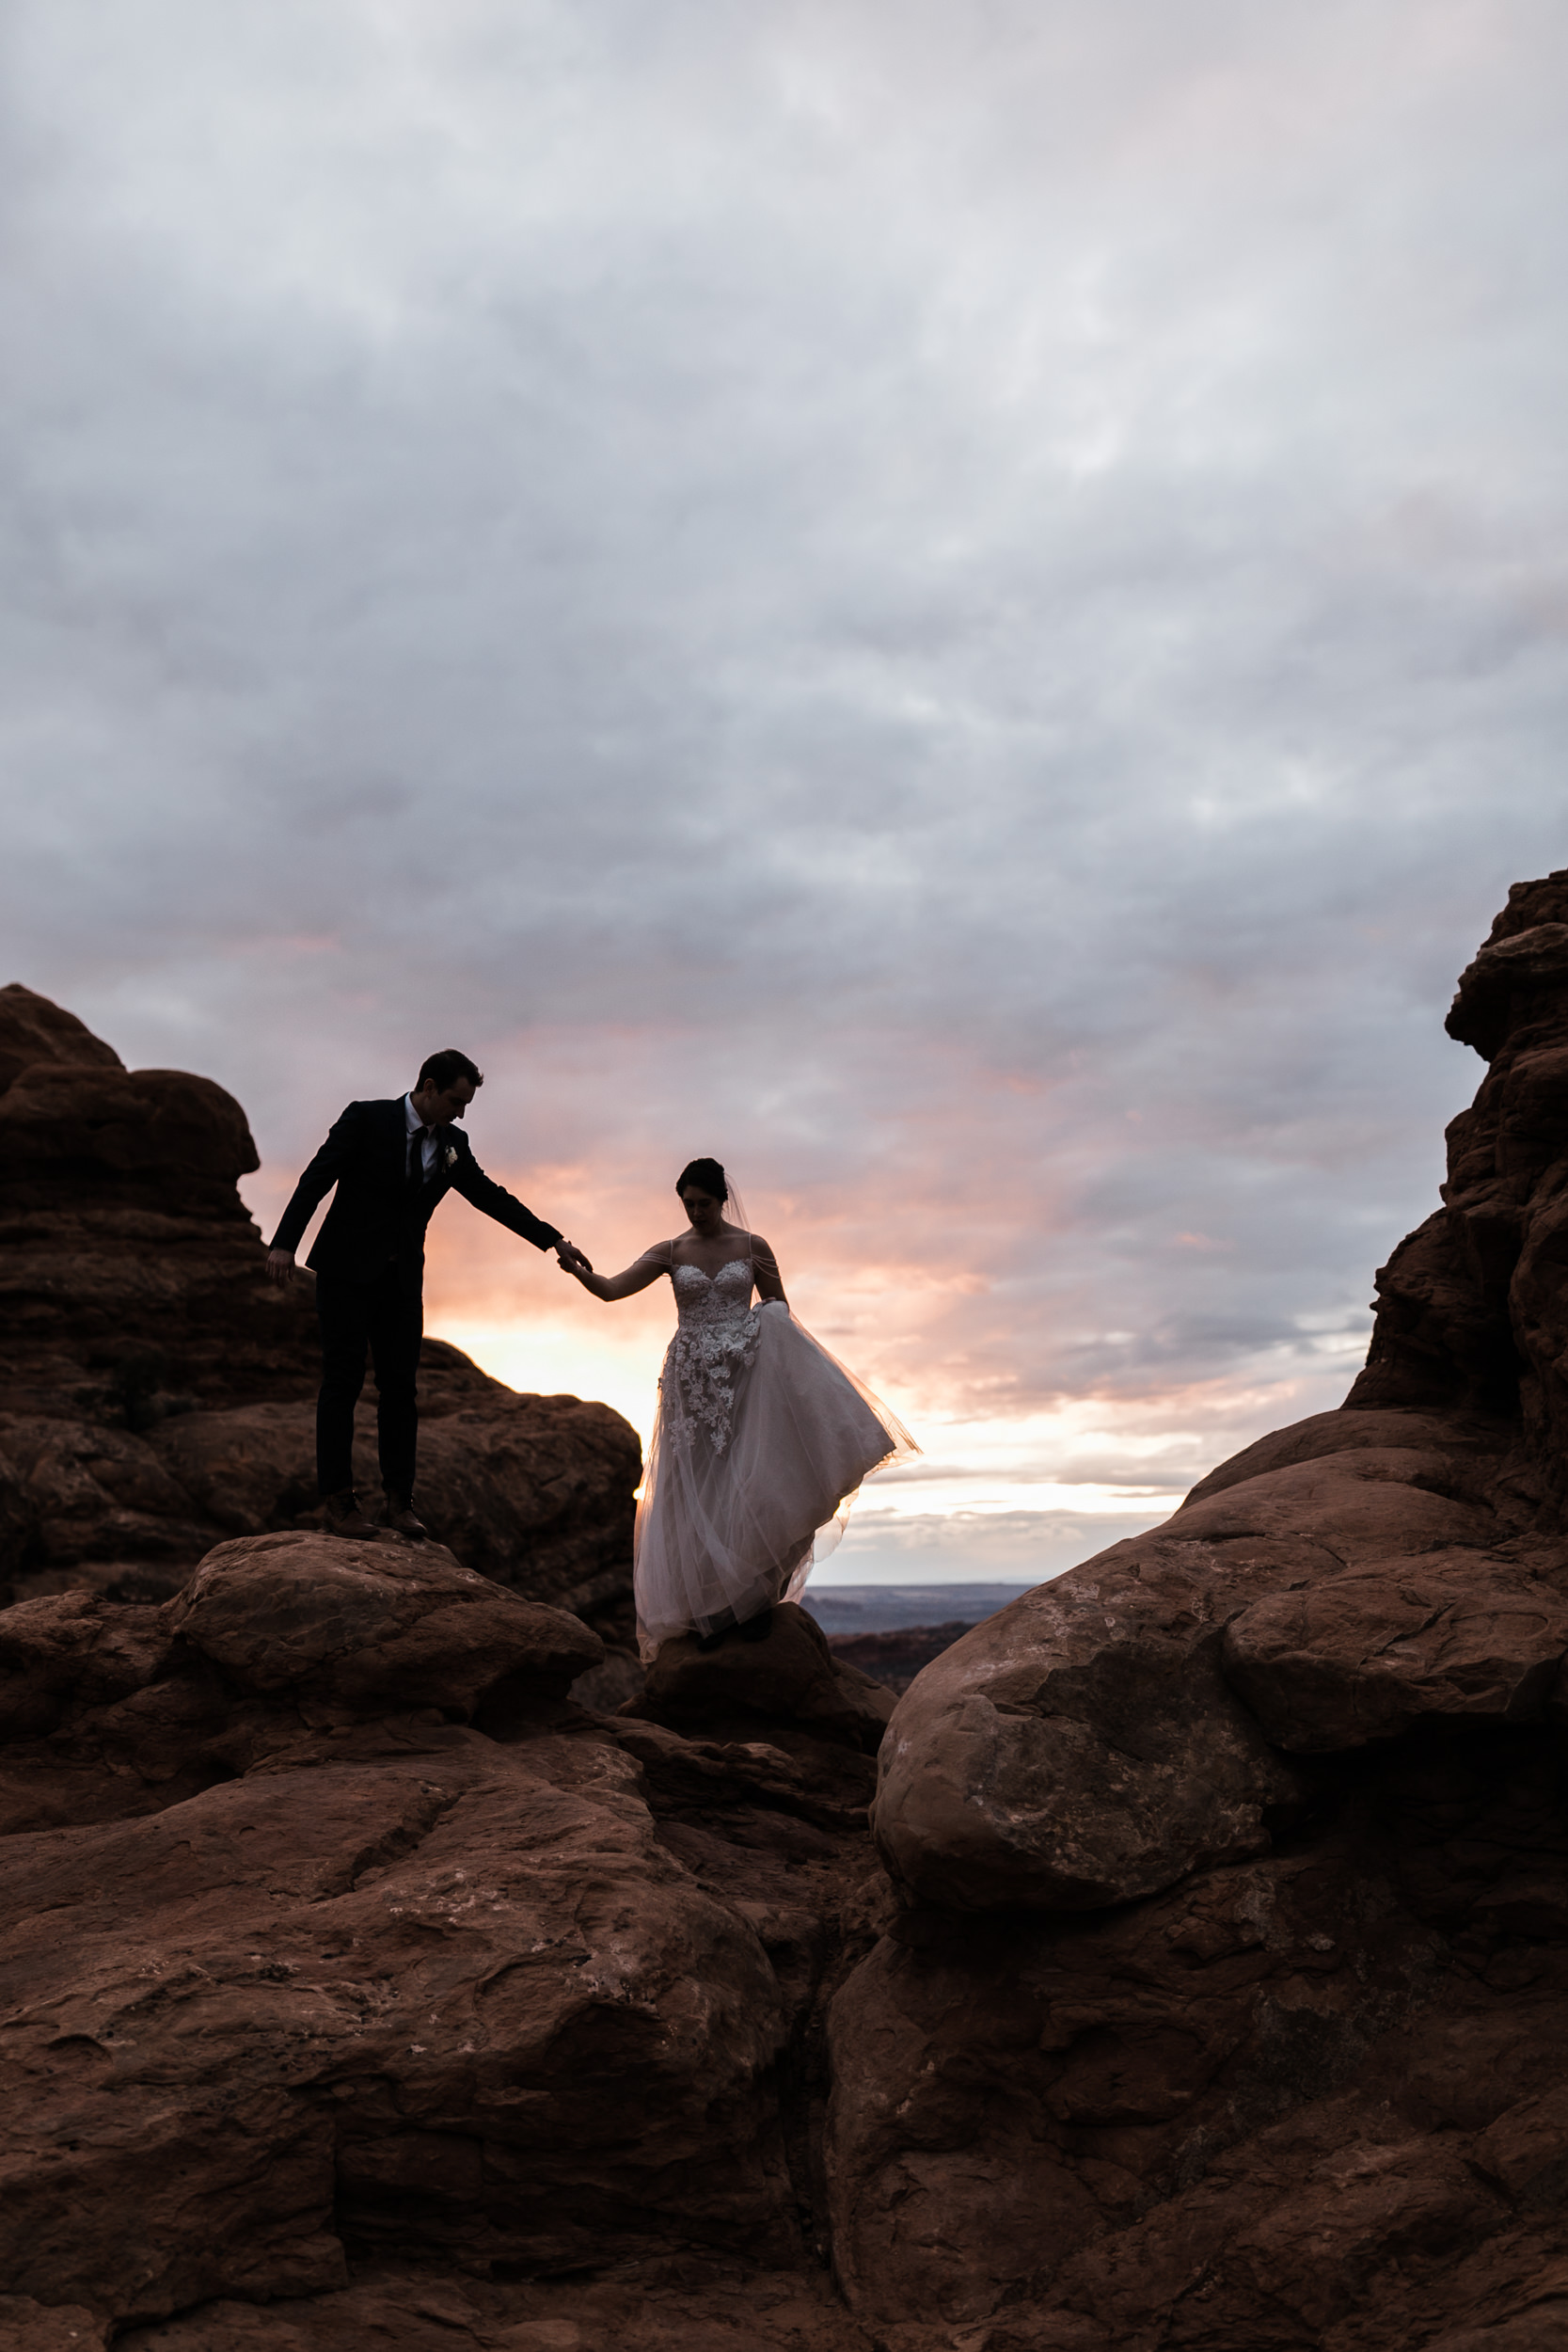 Such an amazing way to end a wedding day in Arches National Park. The weather in Moab usually makes for amazing sunsets.